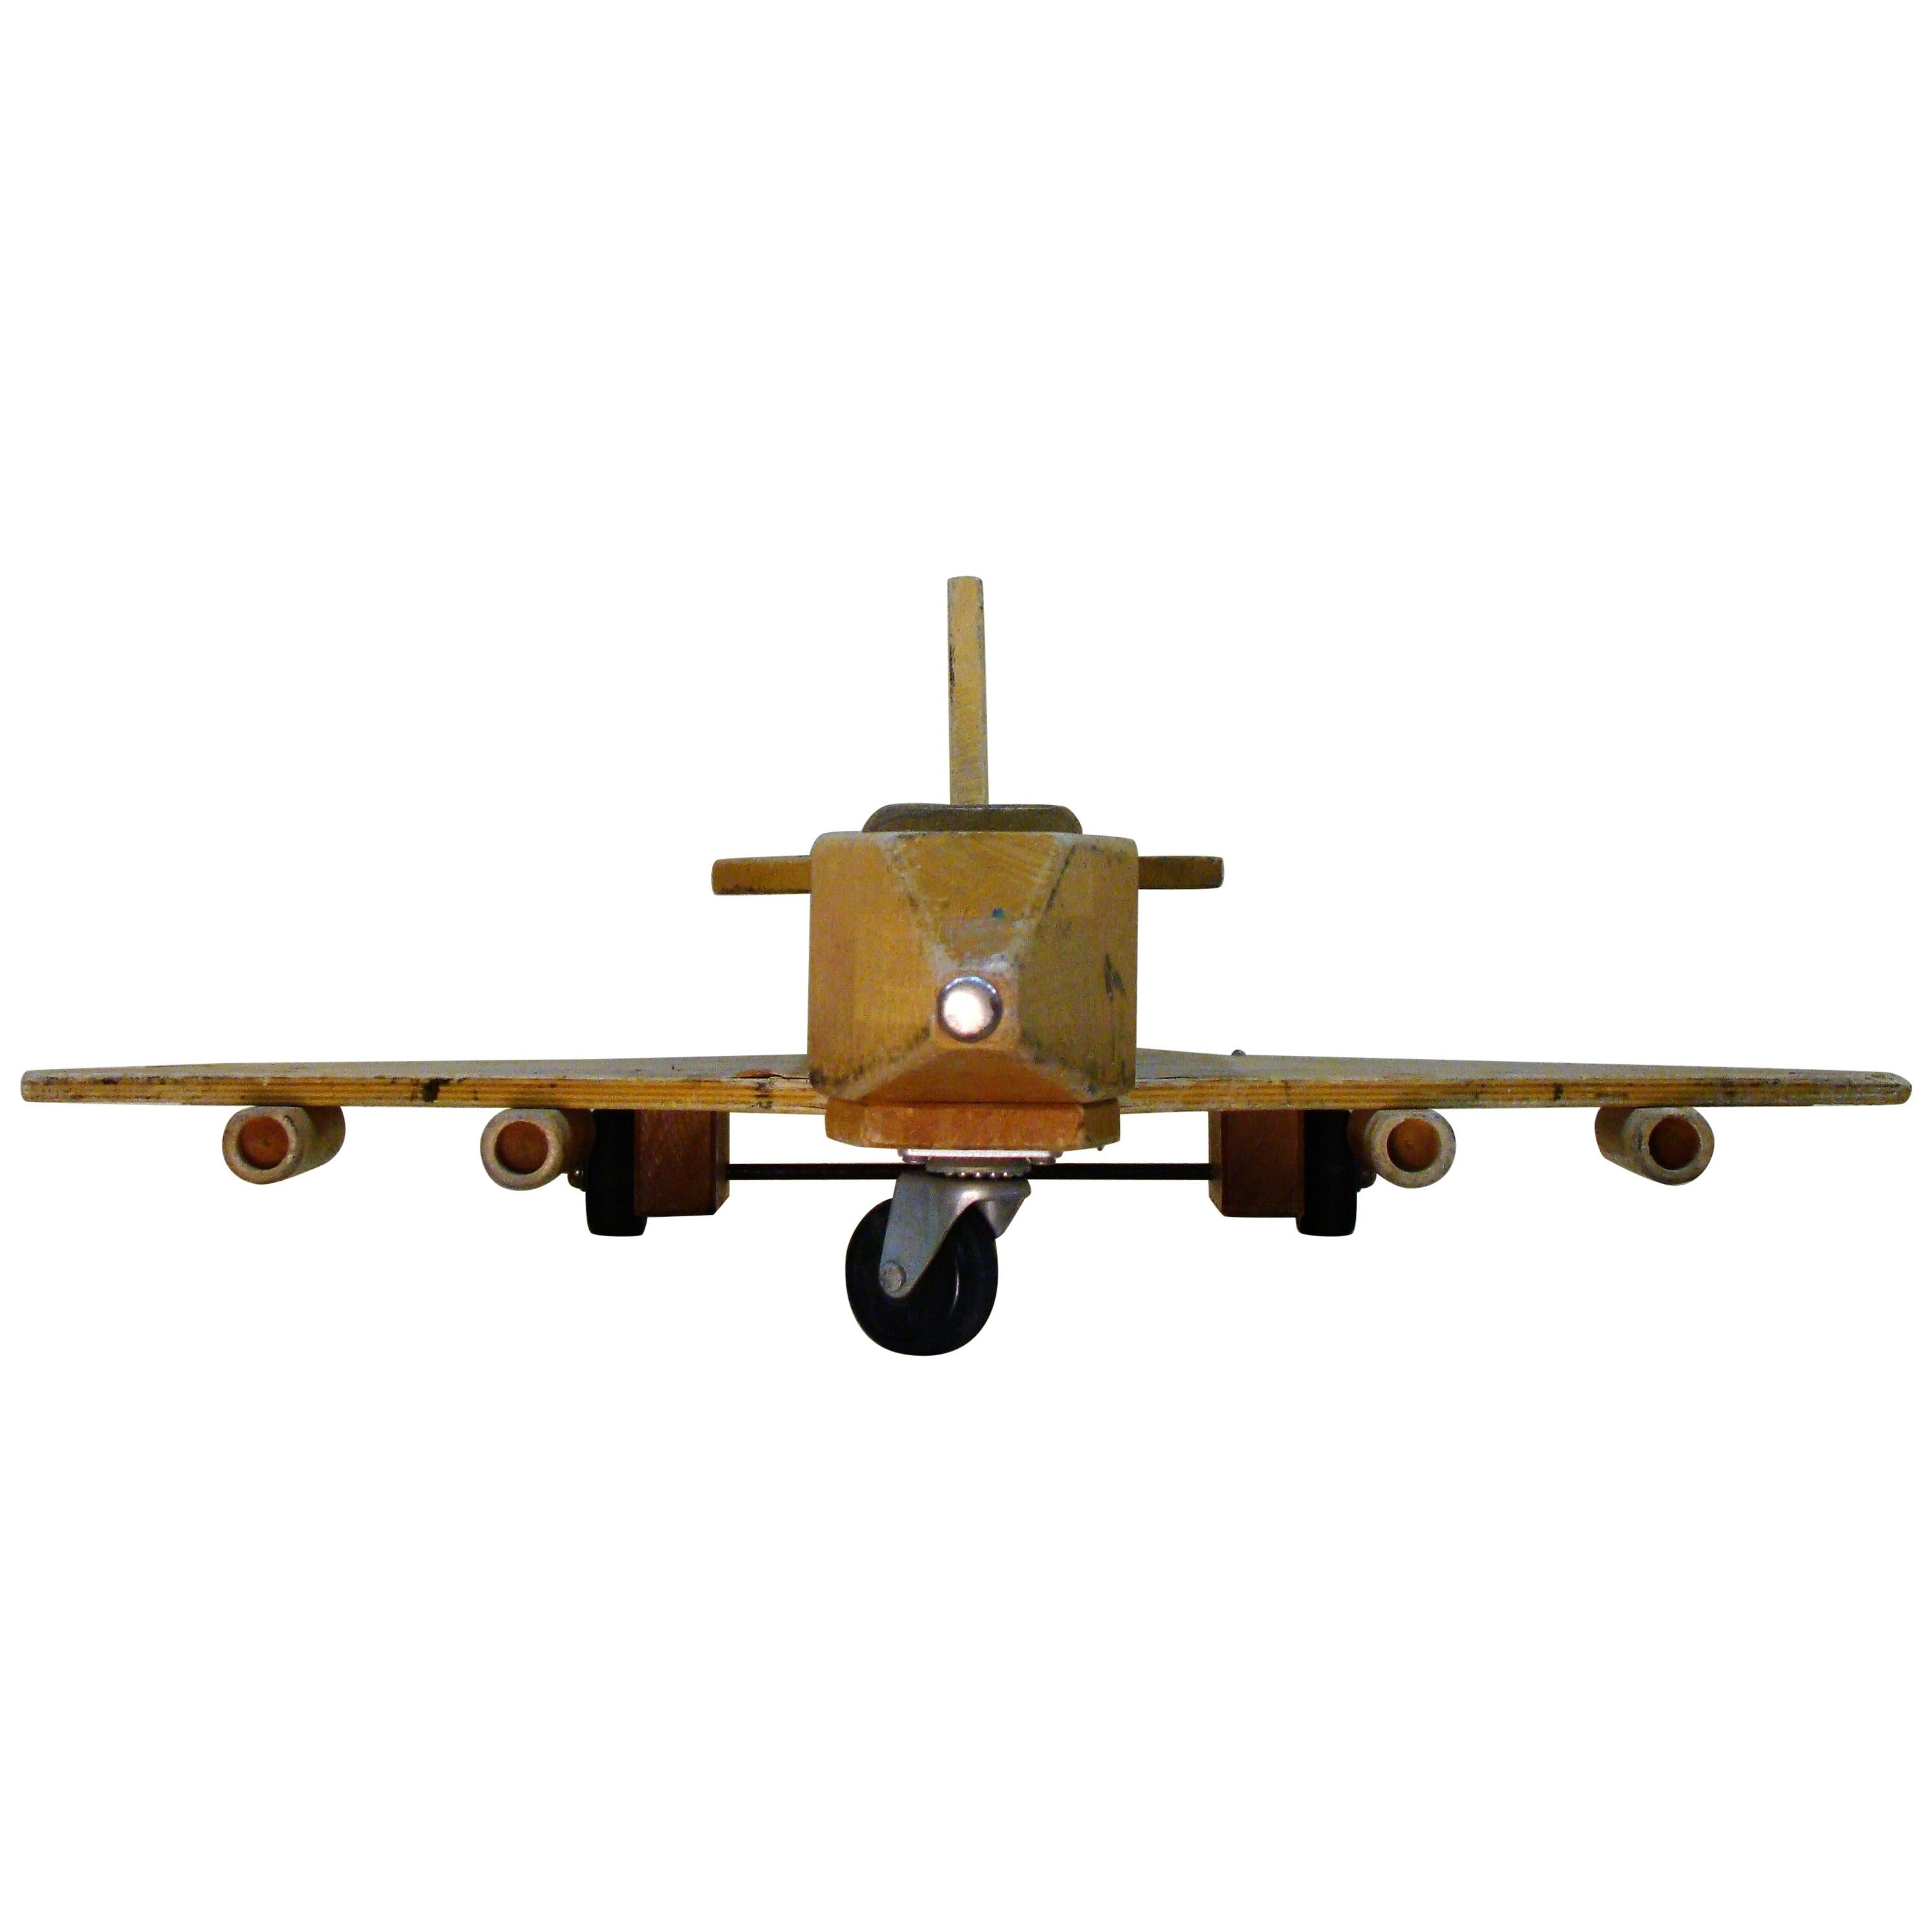 Community Playthings Wooden Toy Cargo Airplane, circa 1968, USA